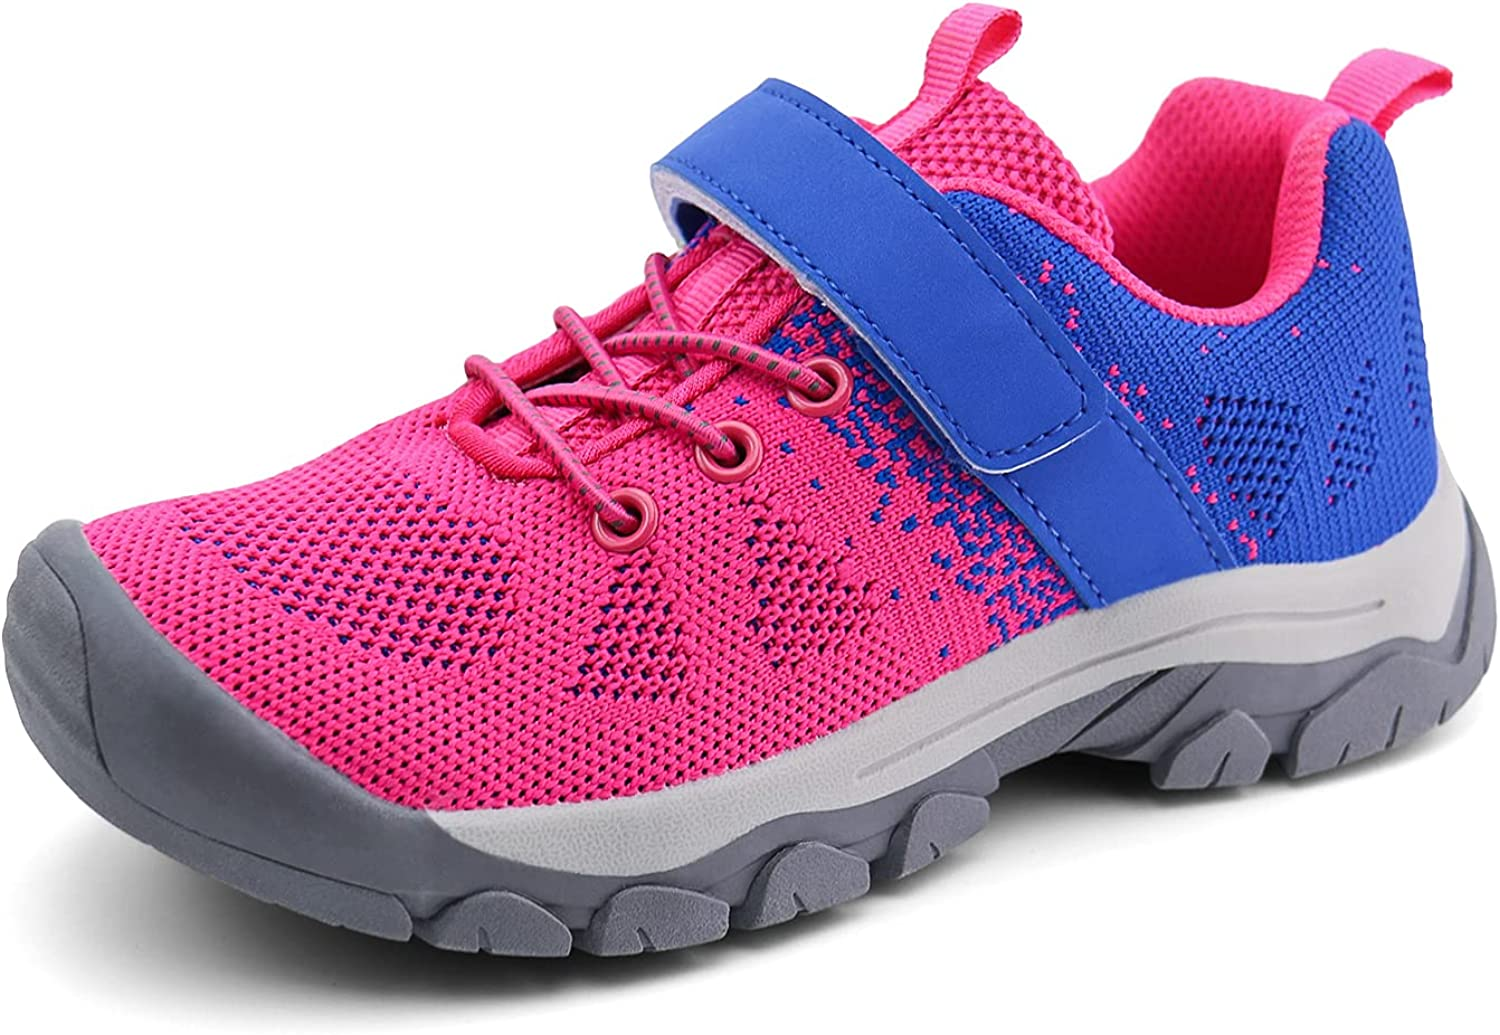 brooman Kids Hiking Shoes Boys Girls Trail Running Shoes Outdoor Walking Sneakers